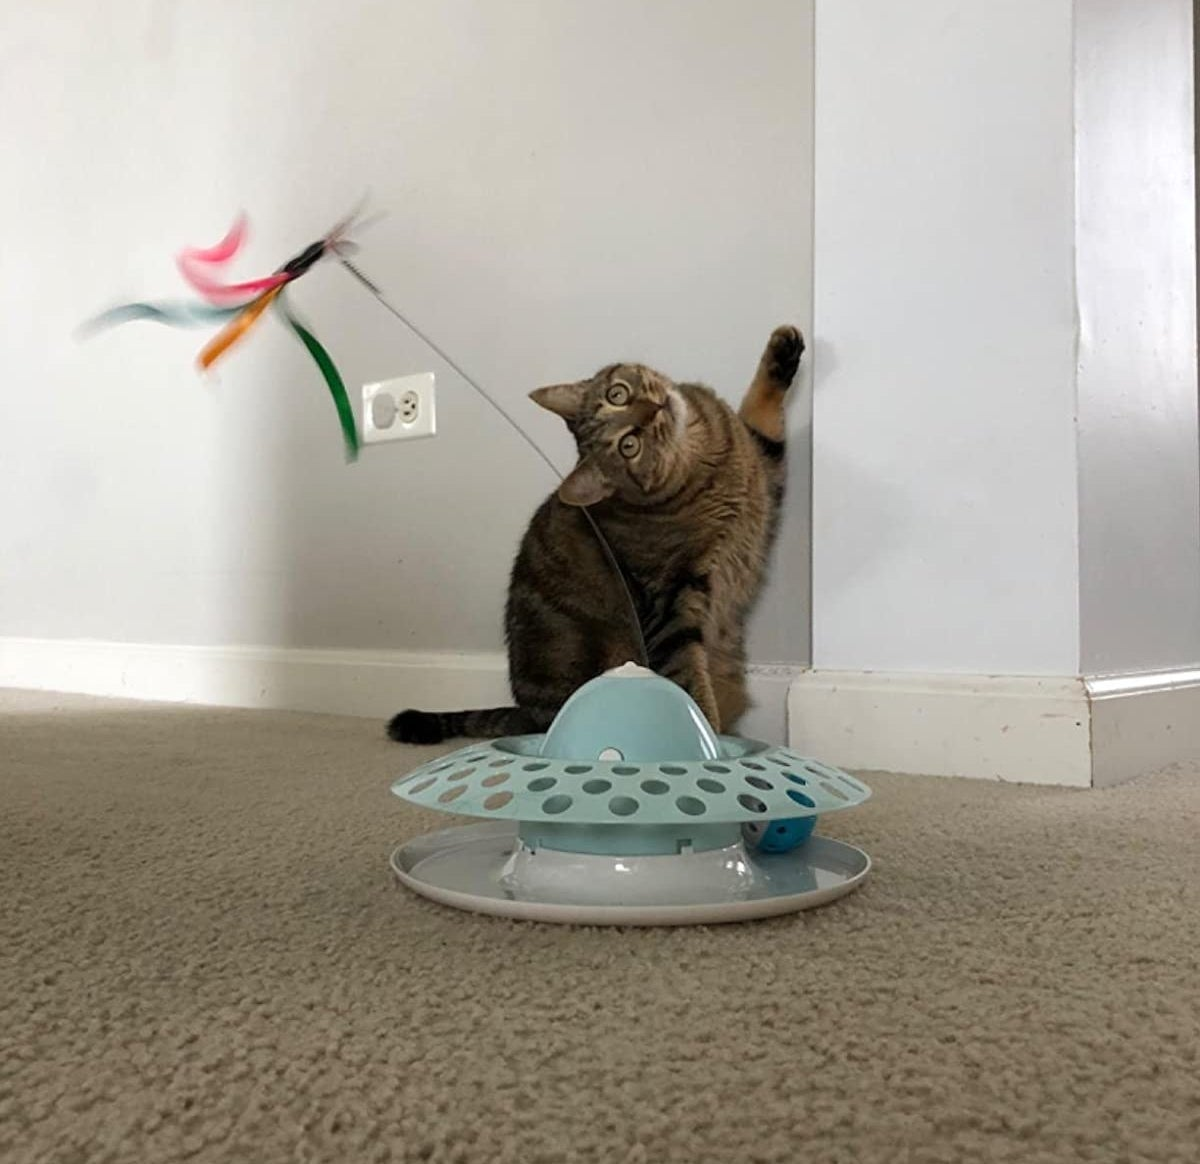 A cat playing with the cat toy